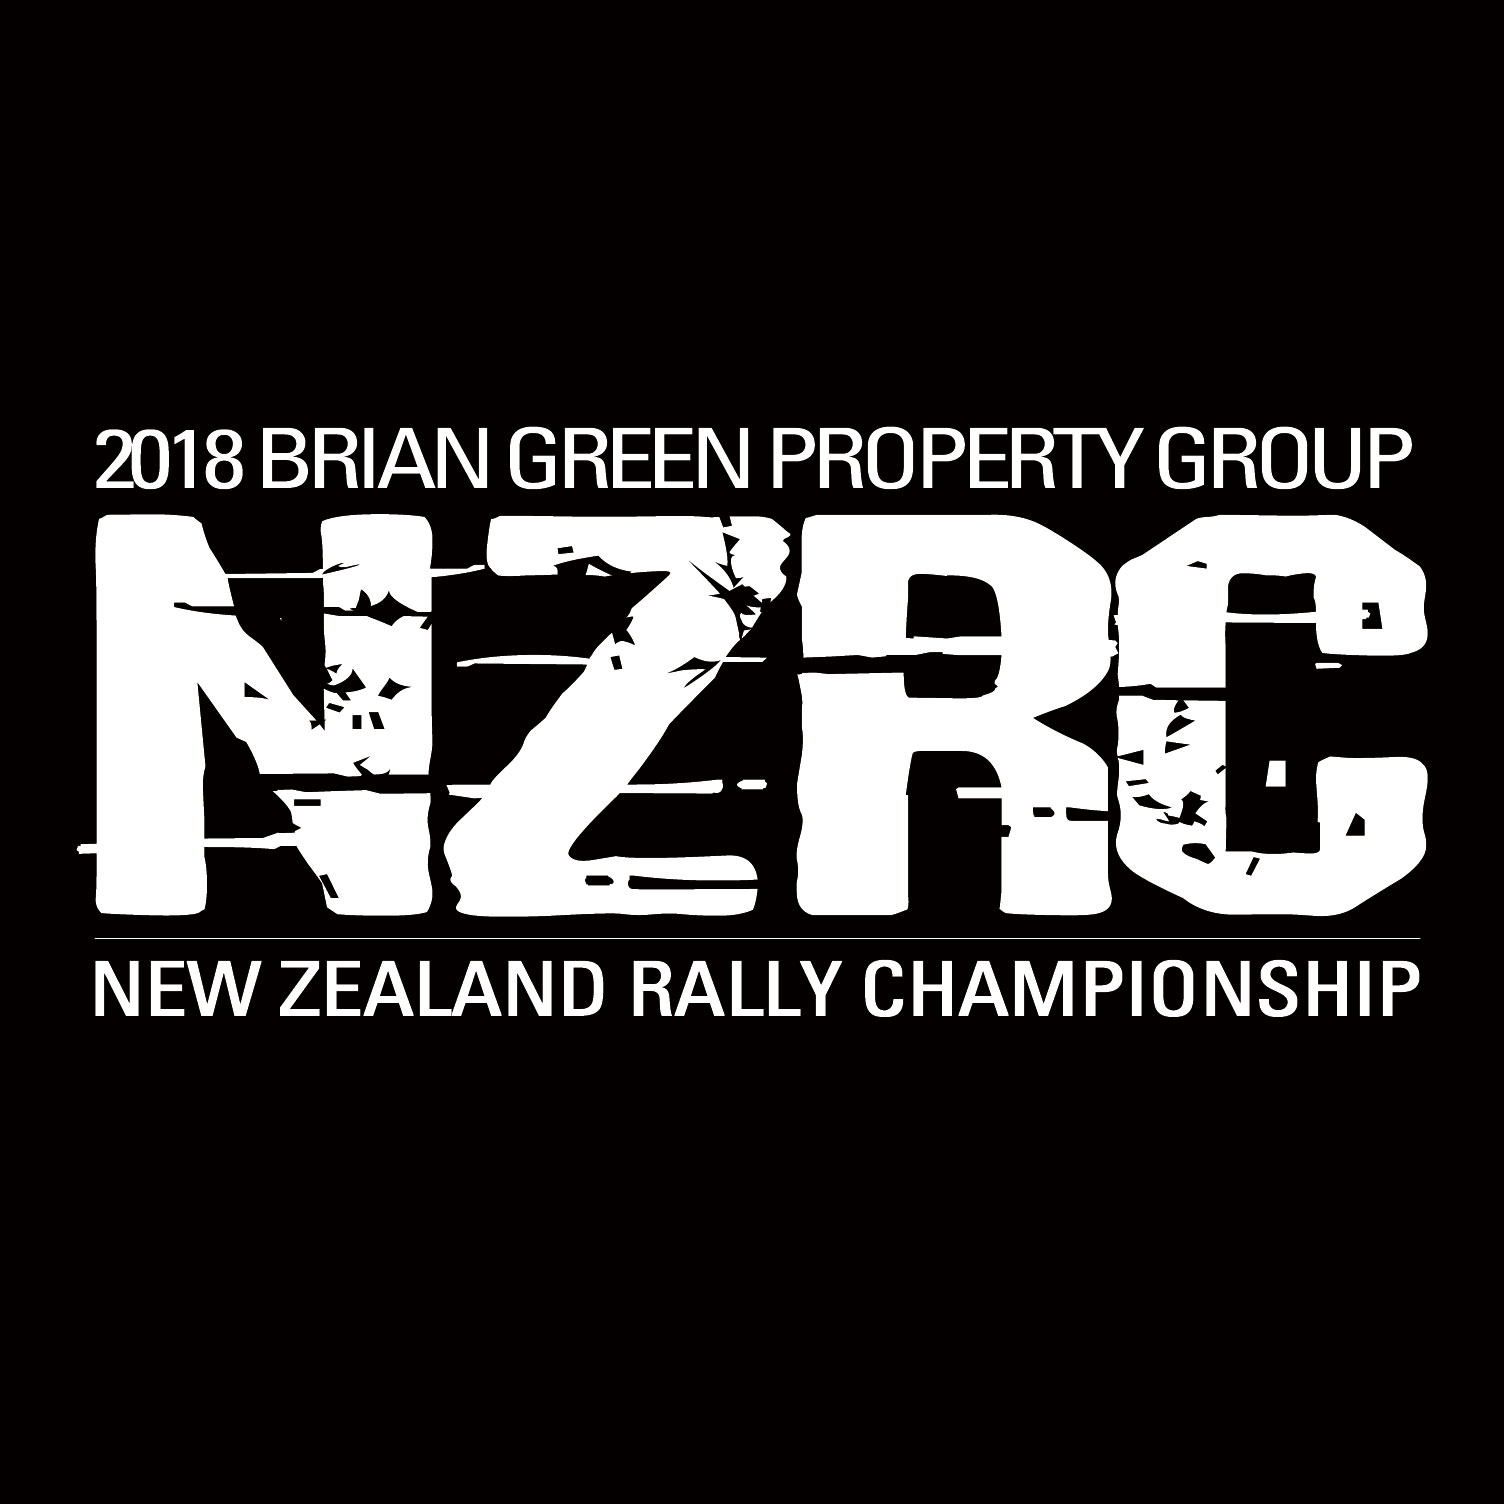 Paddon takes record breaking win at season opener | :: Brian Green Property Group New Zealand Rally Championship ::